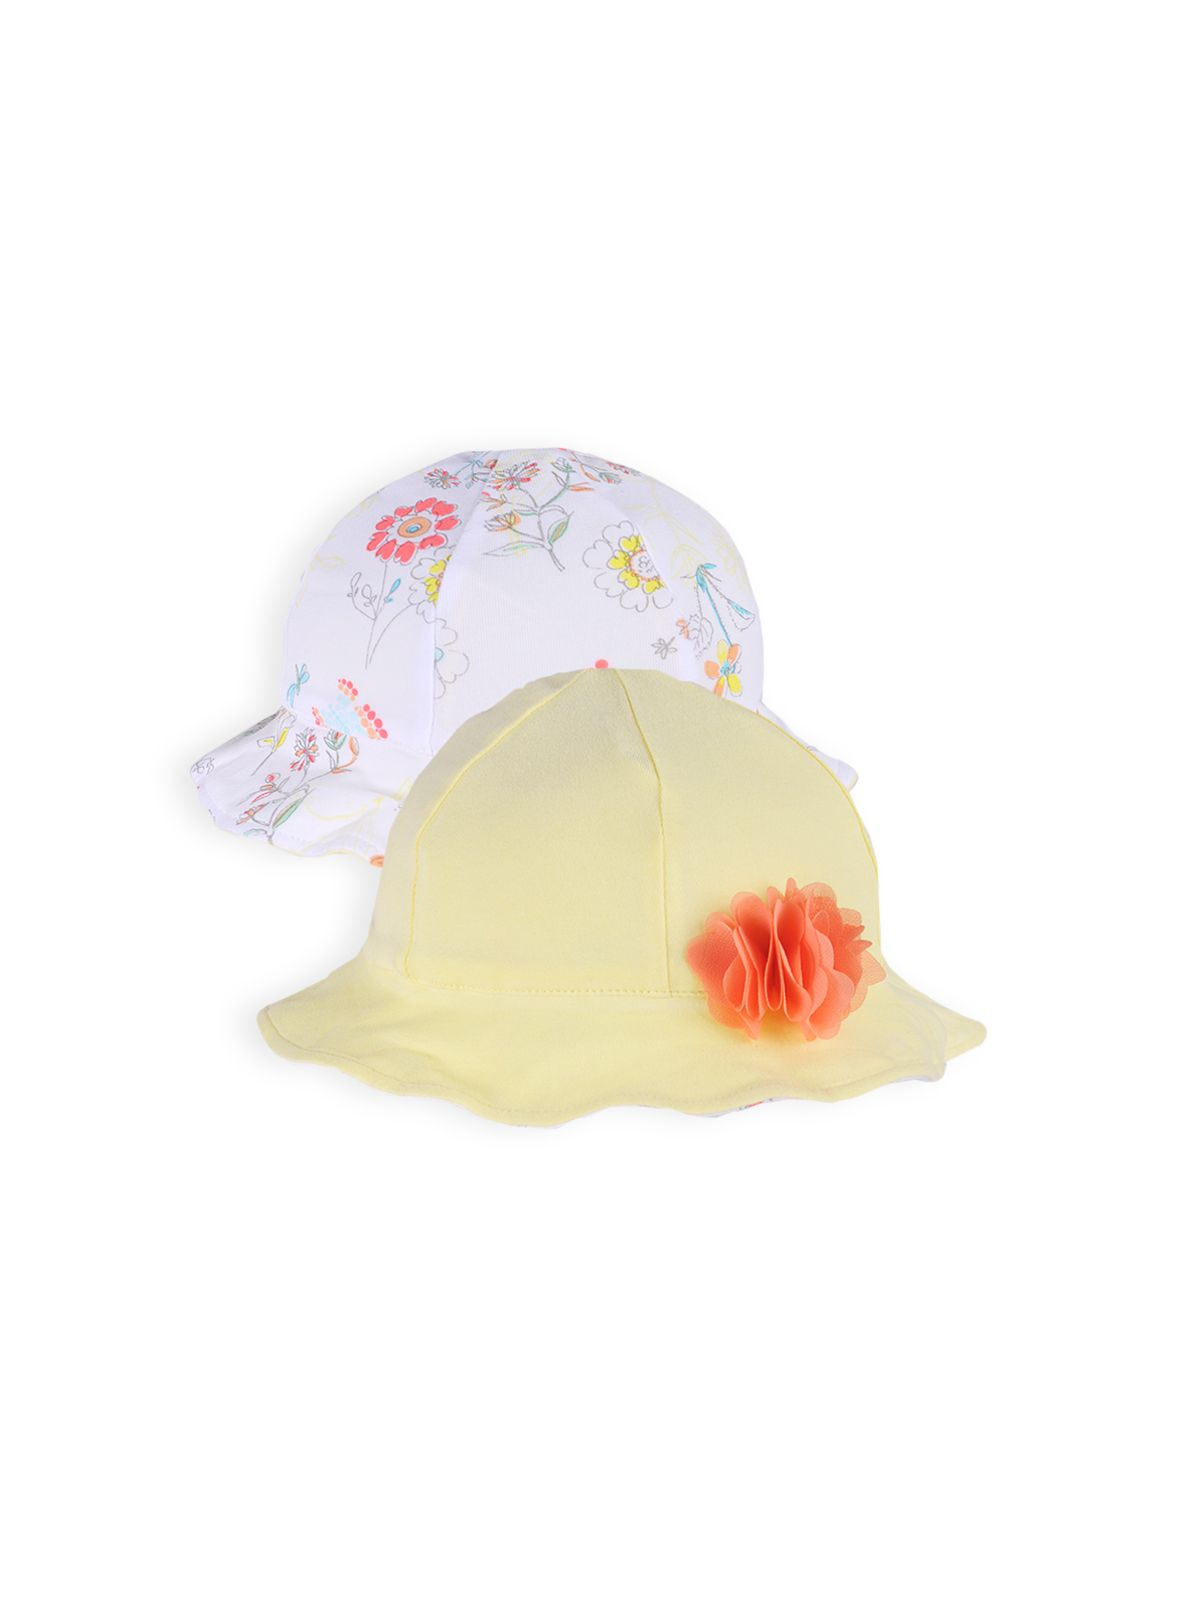 Girls reversible sunhat